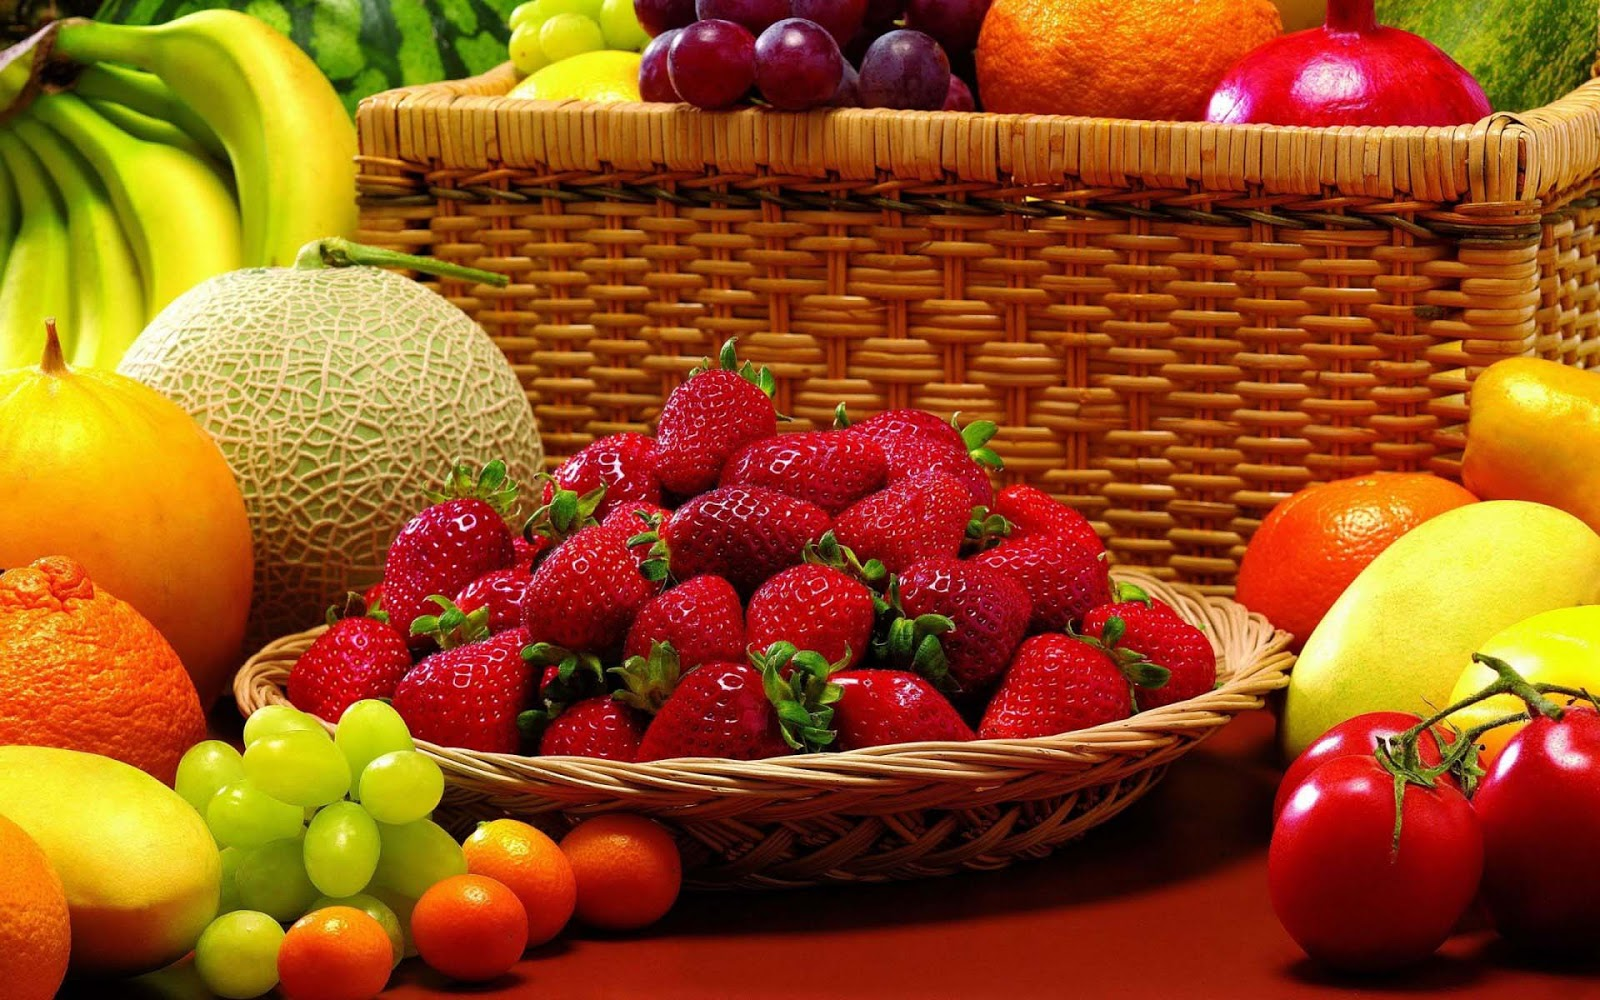 Fruit wallpaper download free - Fruits Strawberry High Quality Images